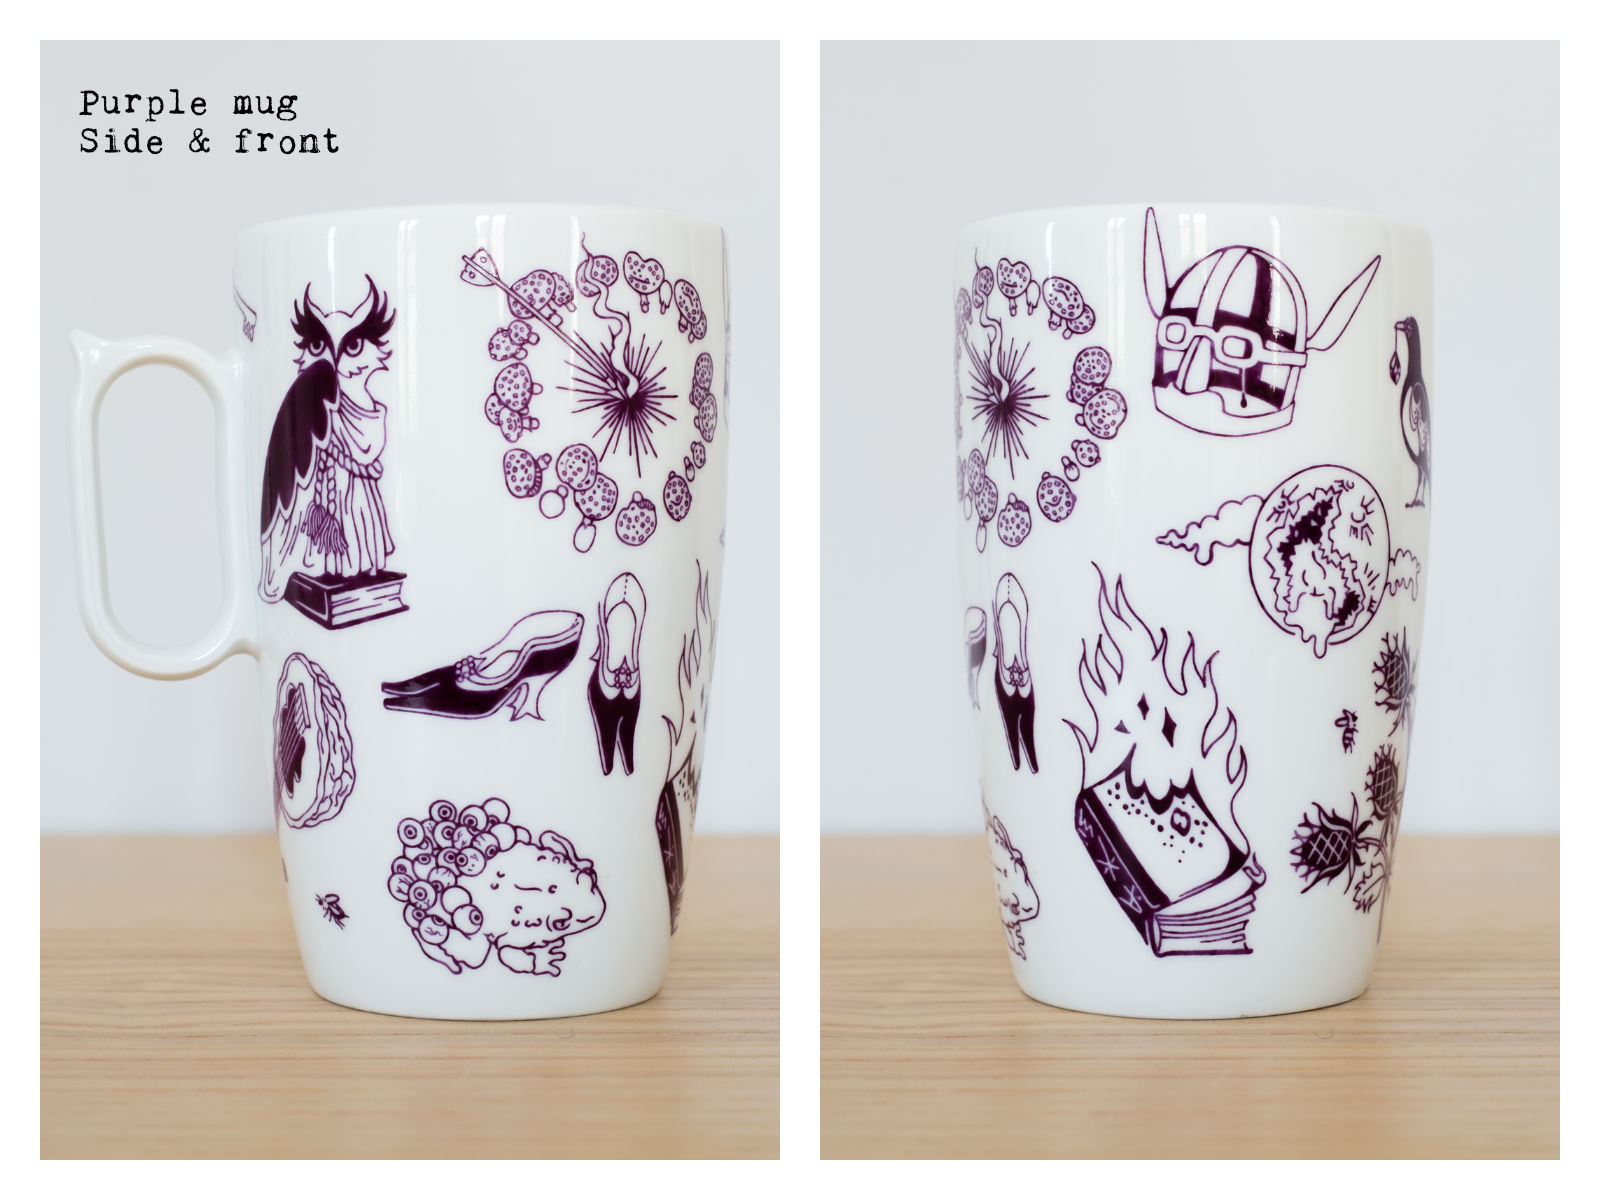 "Side & front of a purple mug from ""Enchanteresse"", a collection of painted porcelains by messalyn."